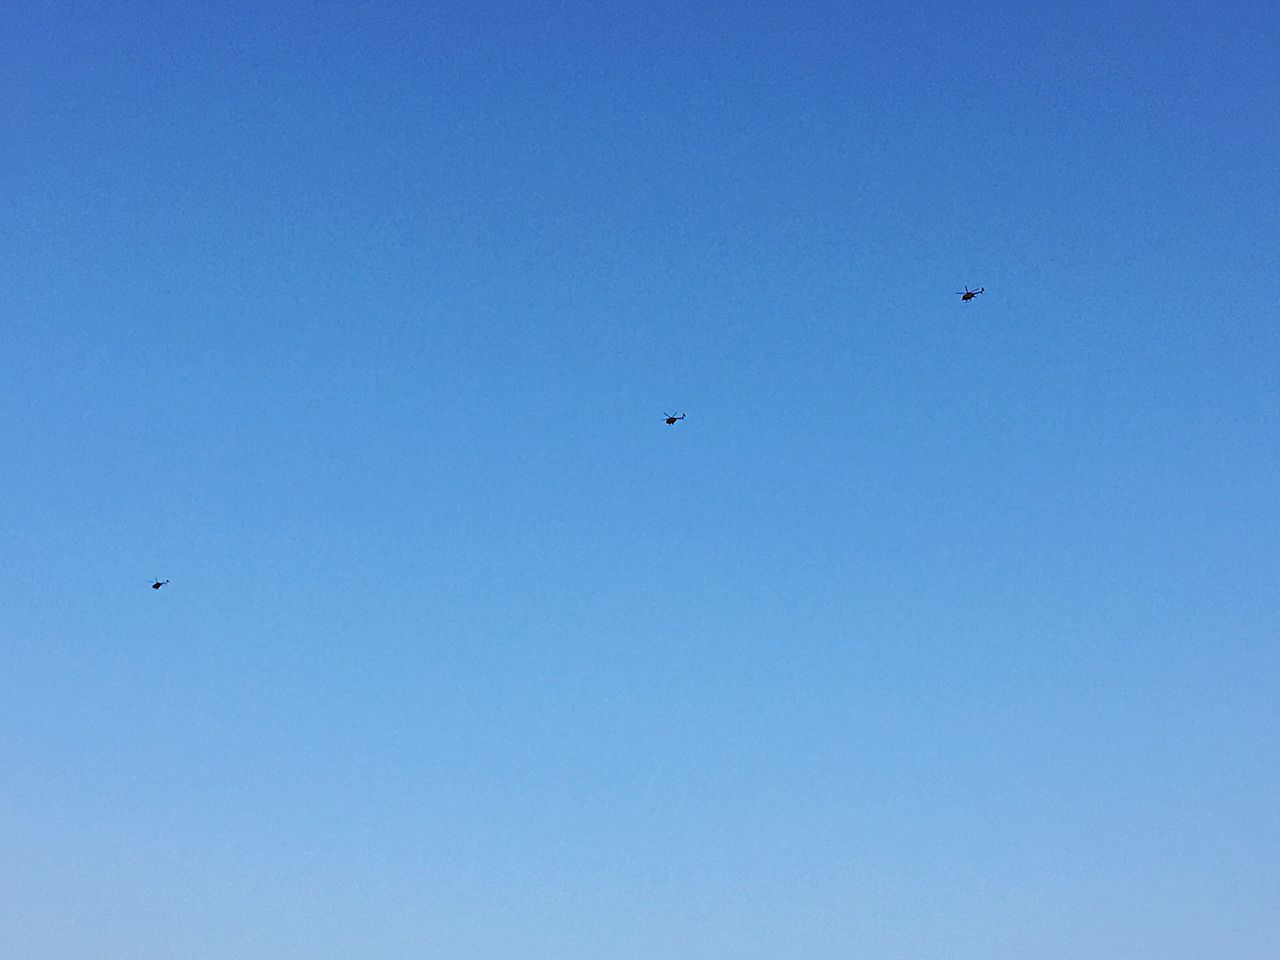 flying, blue, copy space, bird, clear sky, mid-air, low angle view, animals in the wild, animal themes, outdoors, day, no people, nature, beauty in nature, spread wings, sky, paragliding